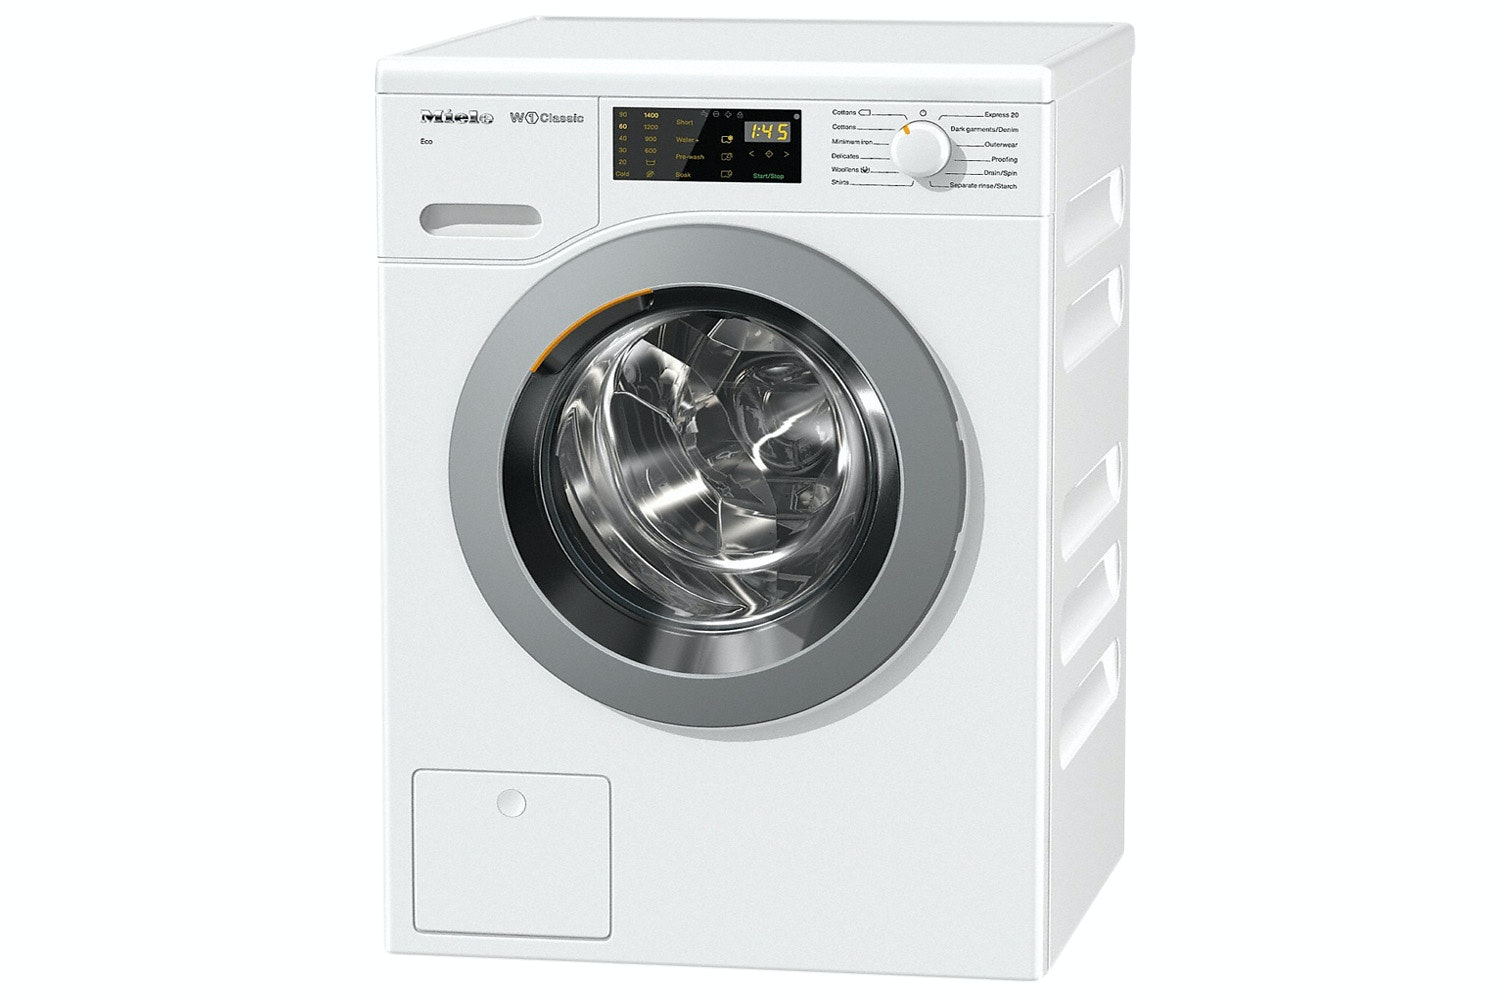 Miele  WDB020 Eco W1 Classic front-loading washing machine   for 1-7 kg of laundry with reliable Miele quality at an attractive price